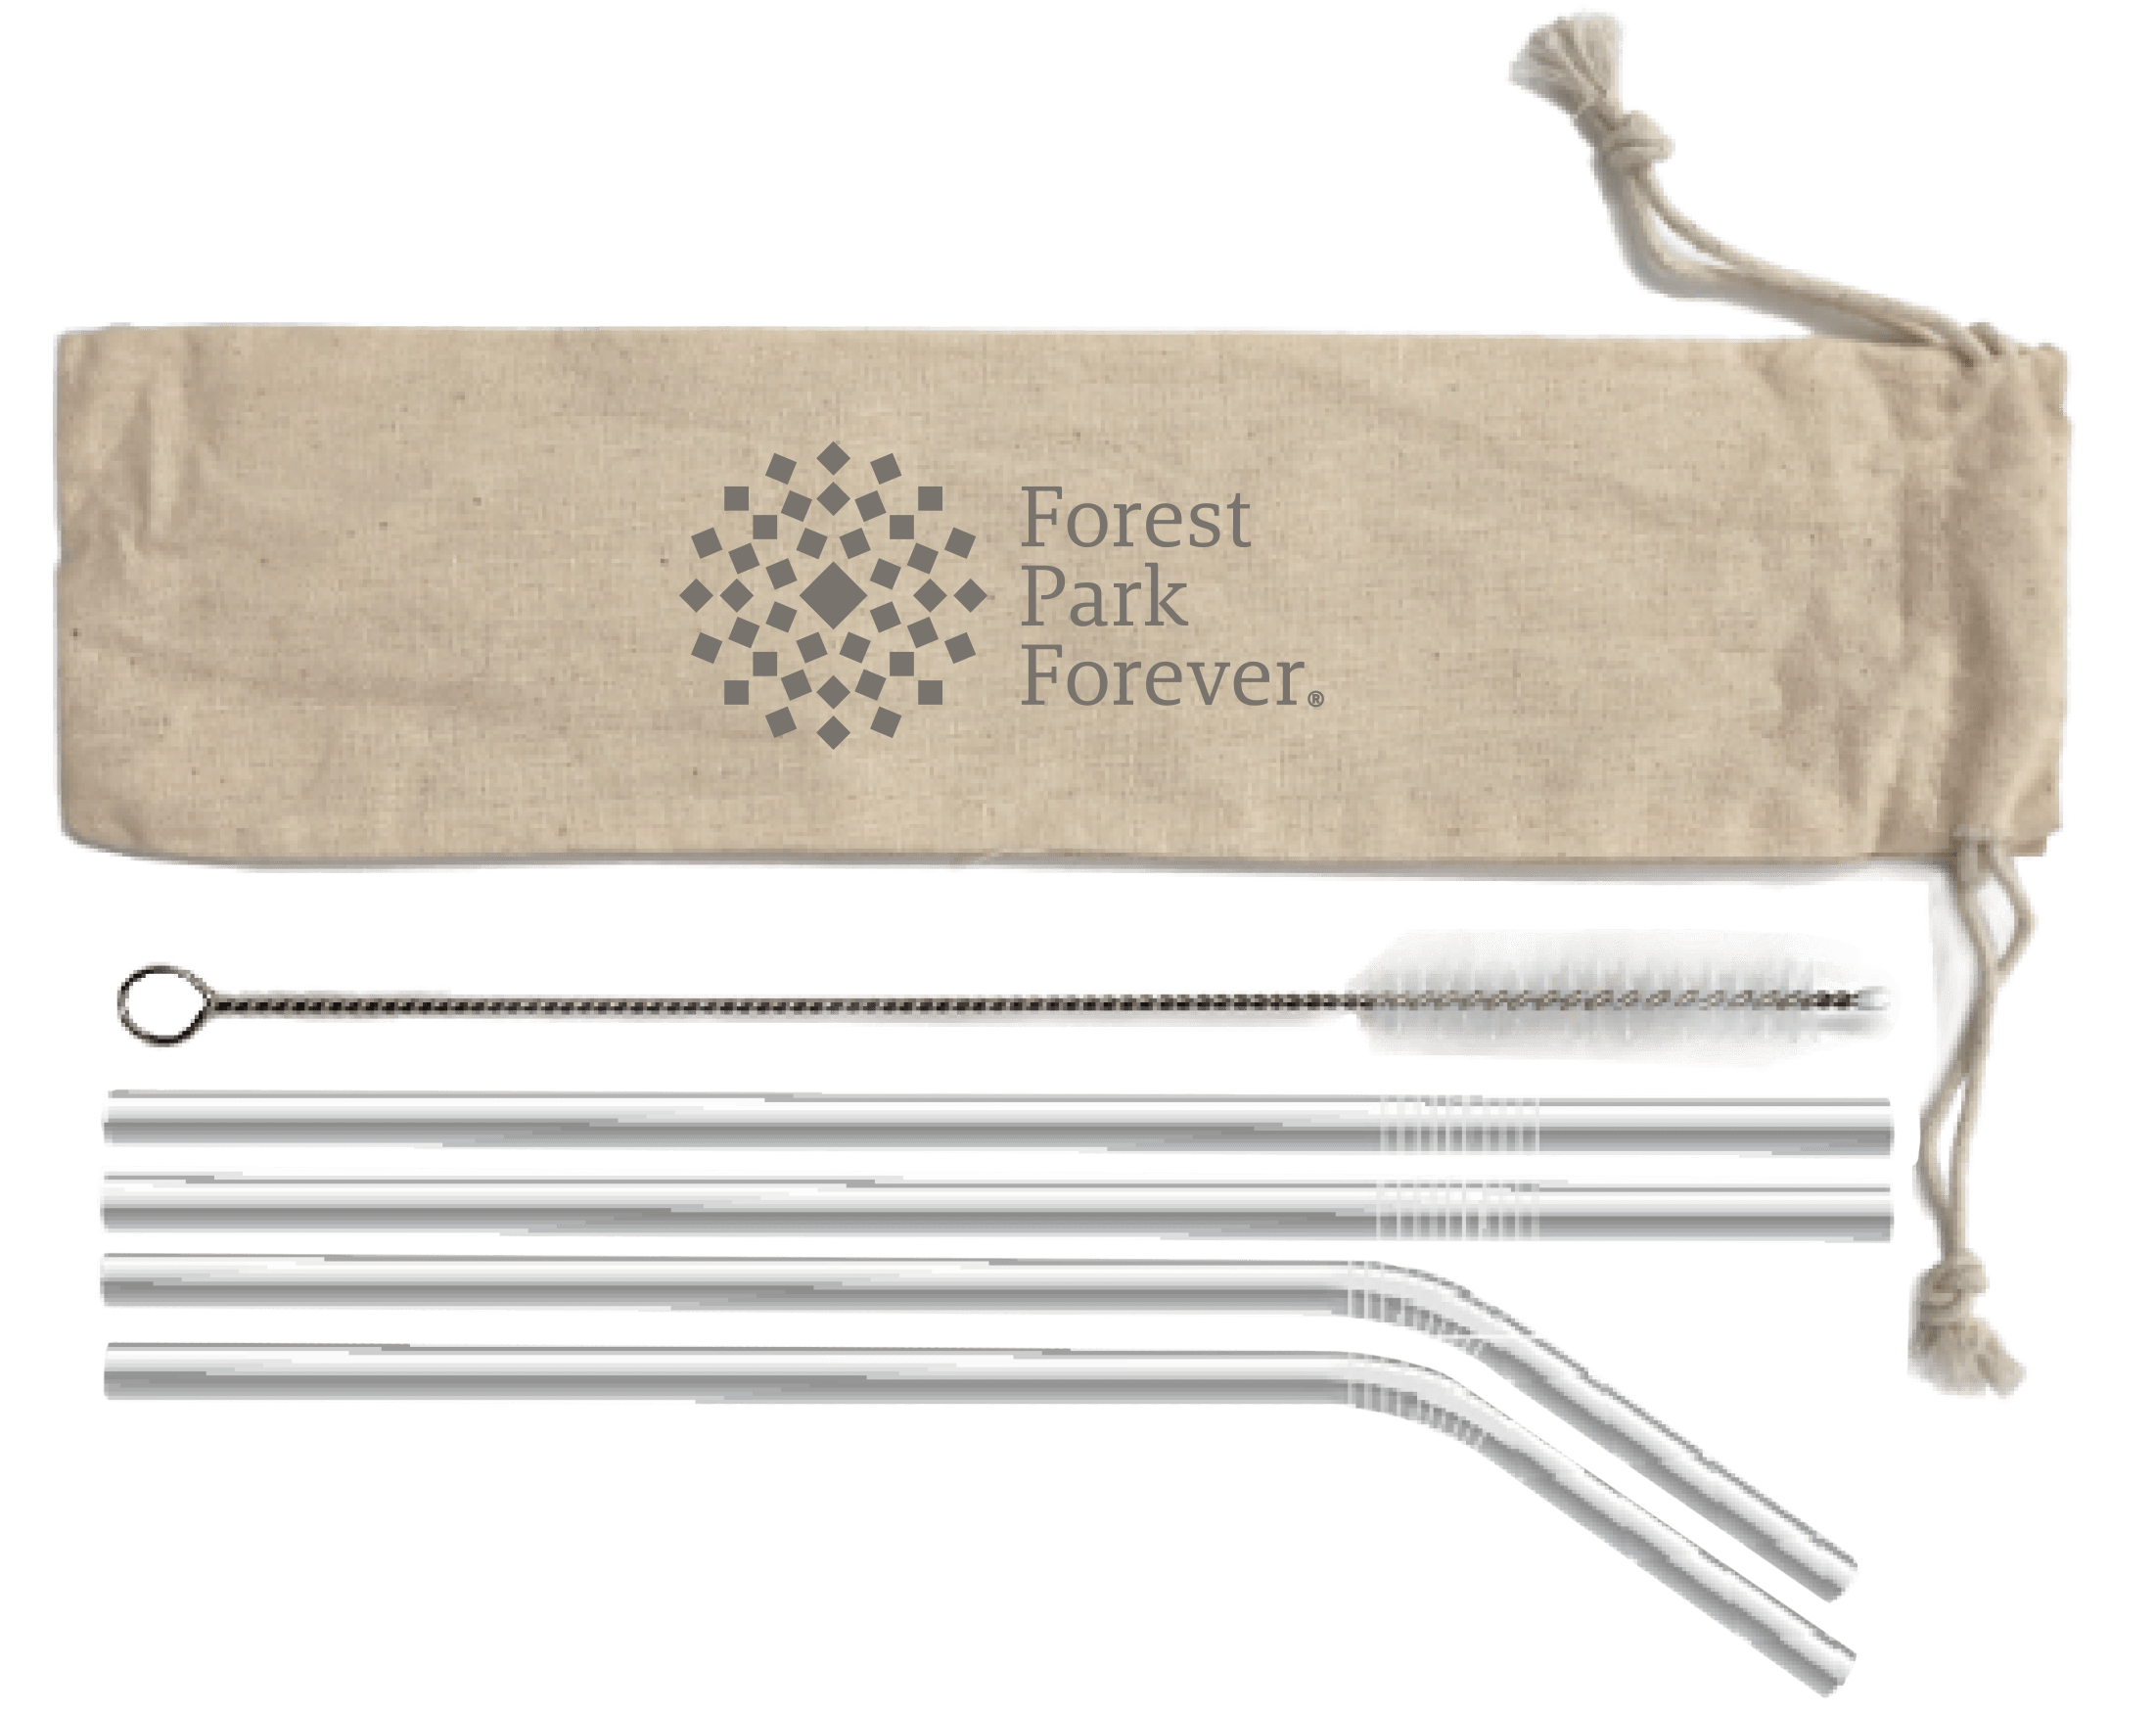 Park Naturalist Gift: Reusable Stainless Straw Set